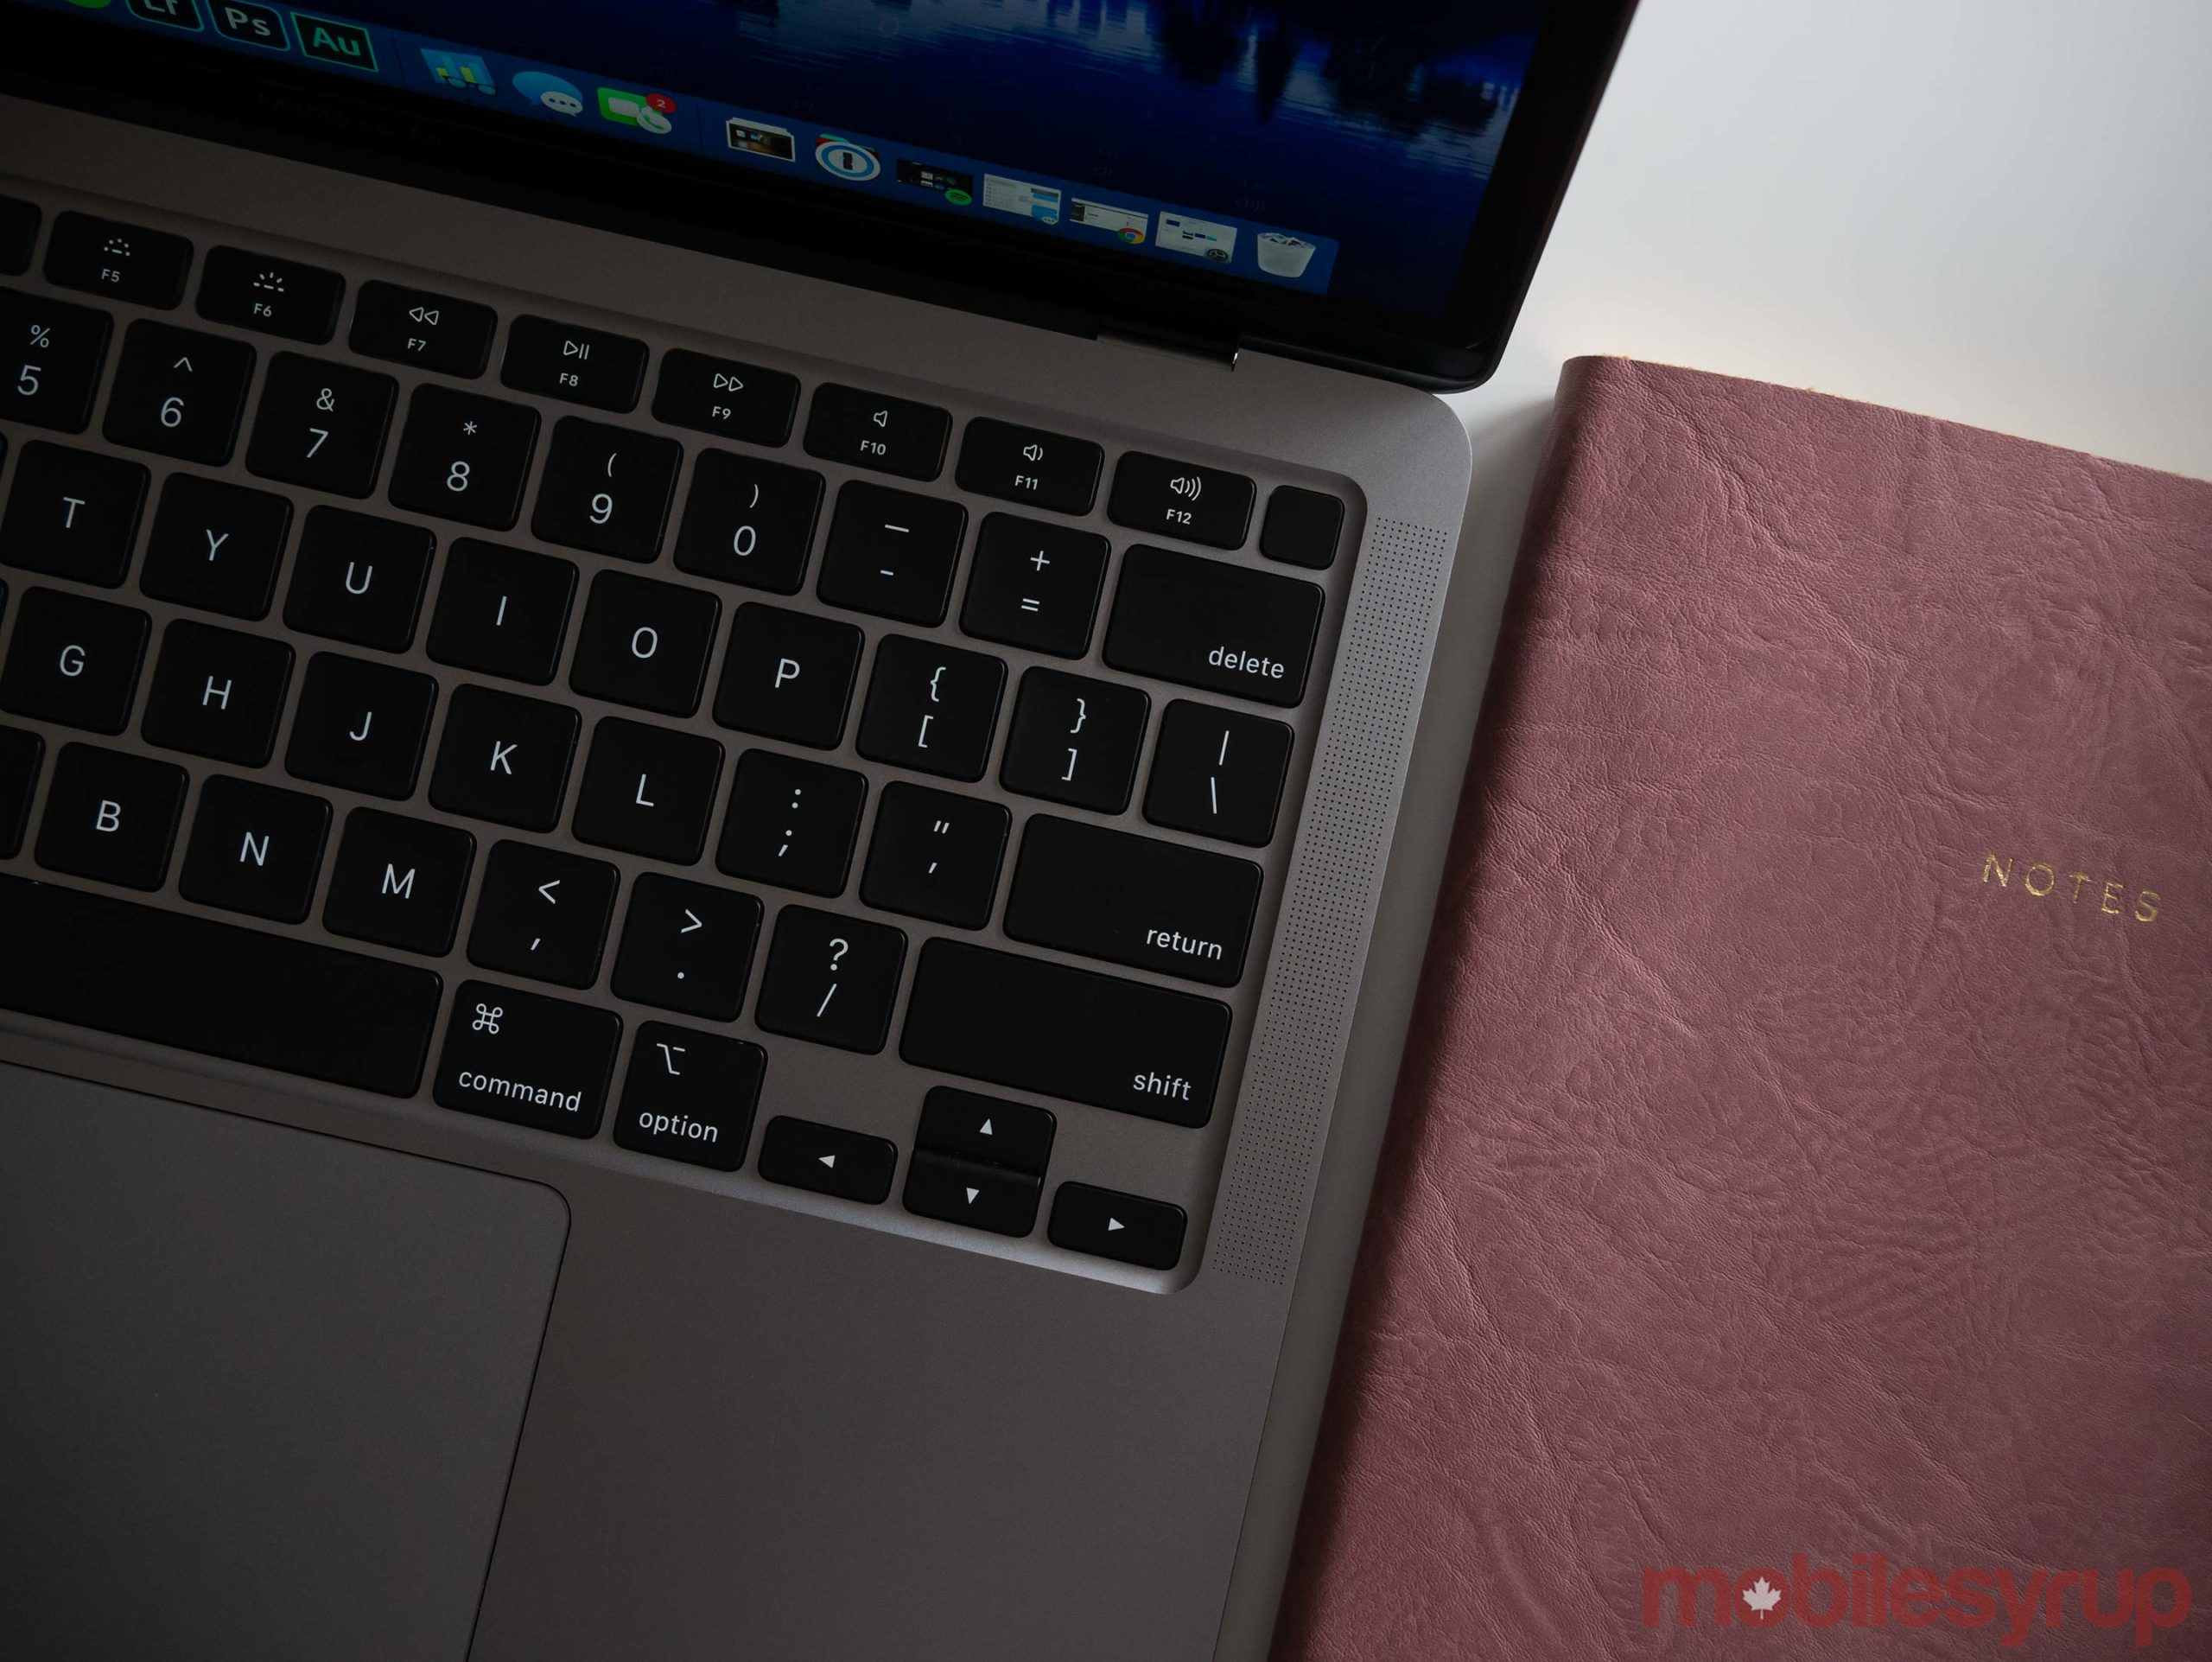 MacBook Air (2020) keyboard